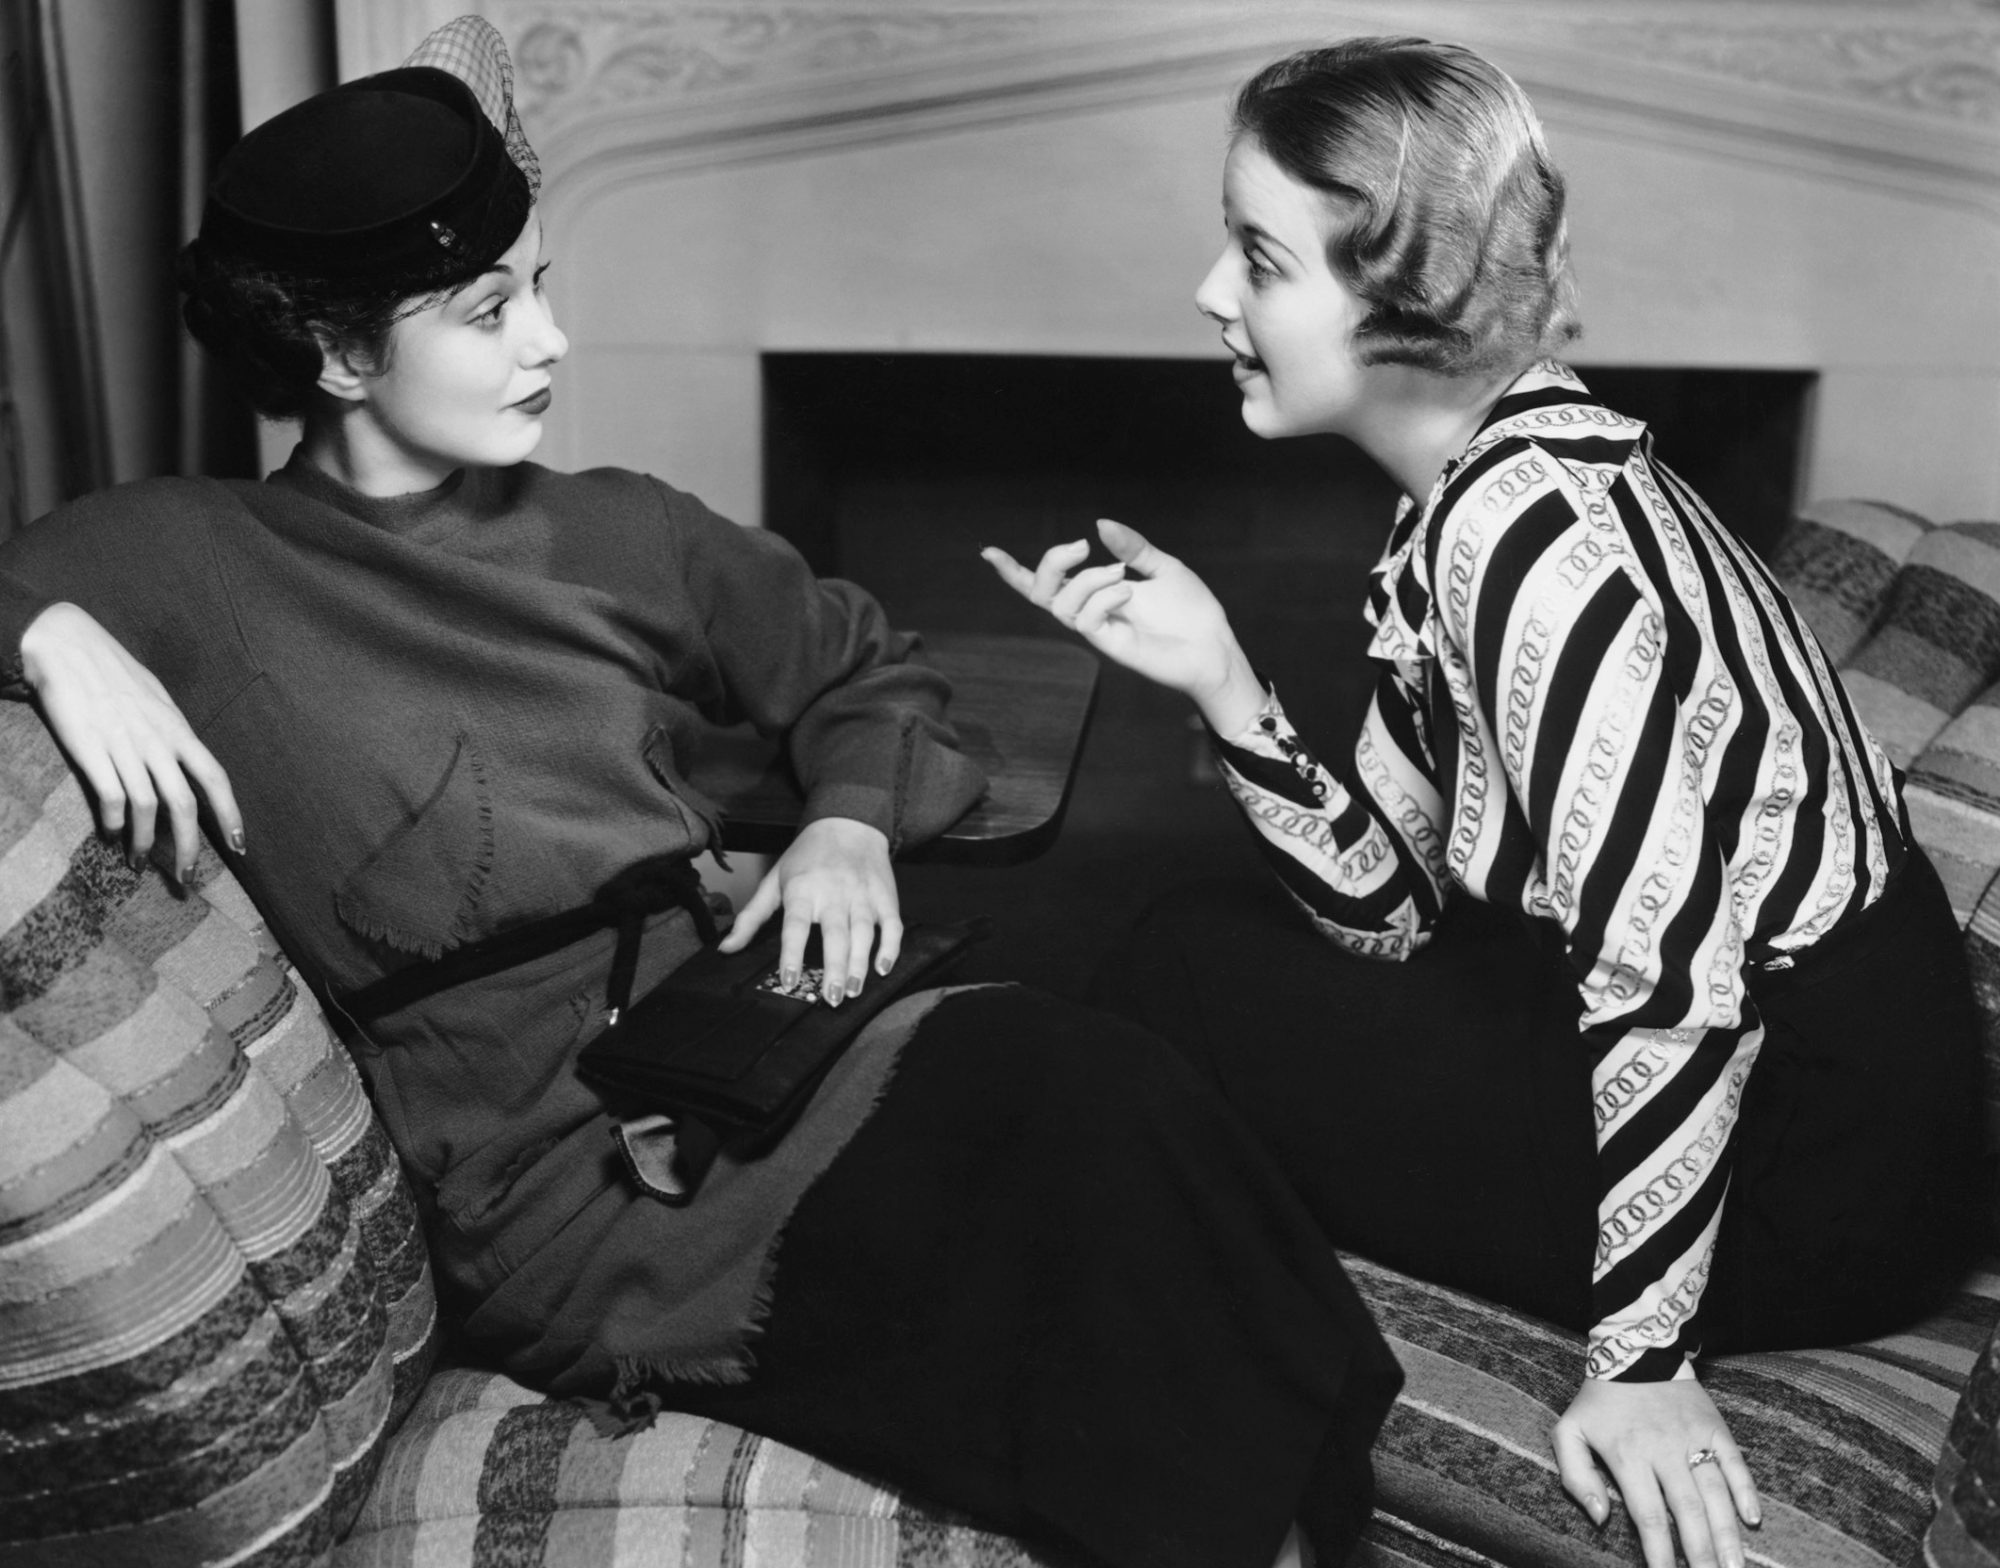 Two woman talking in old black and white photo